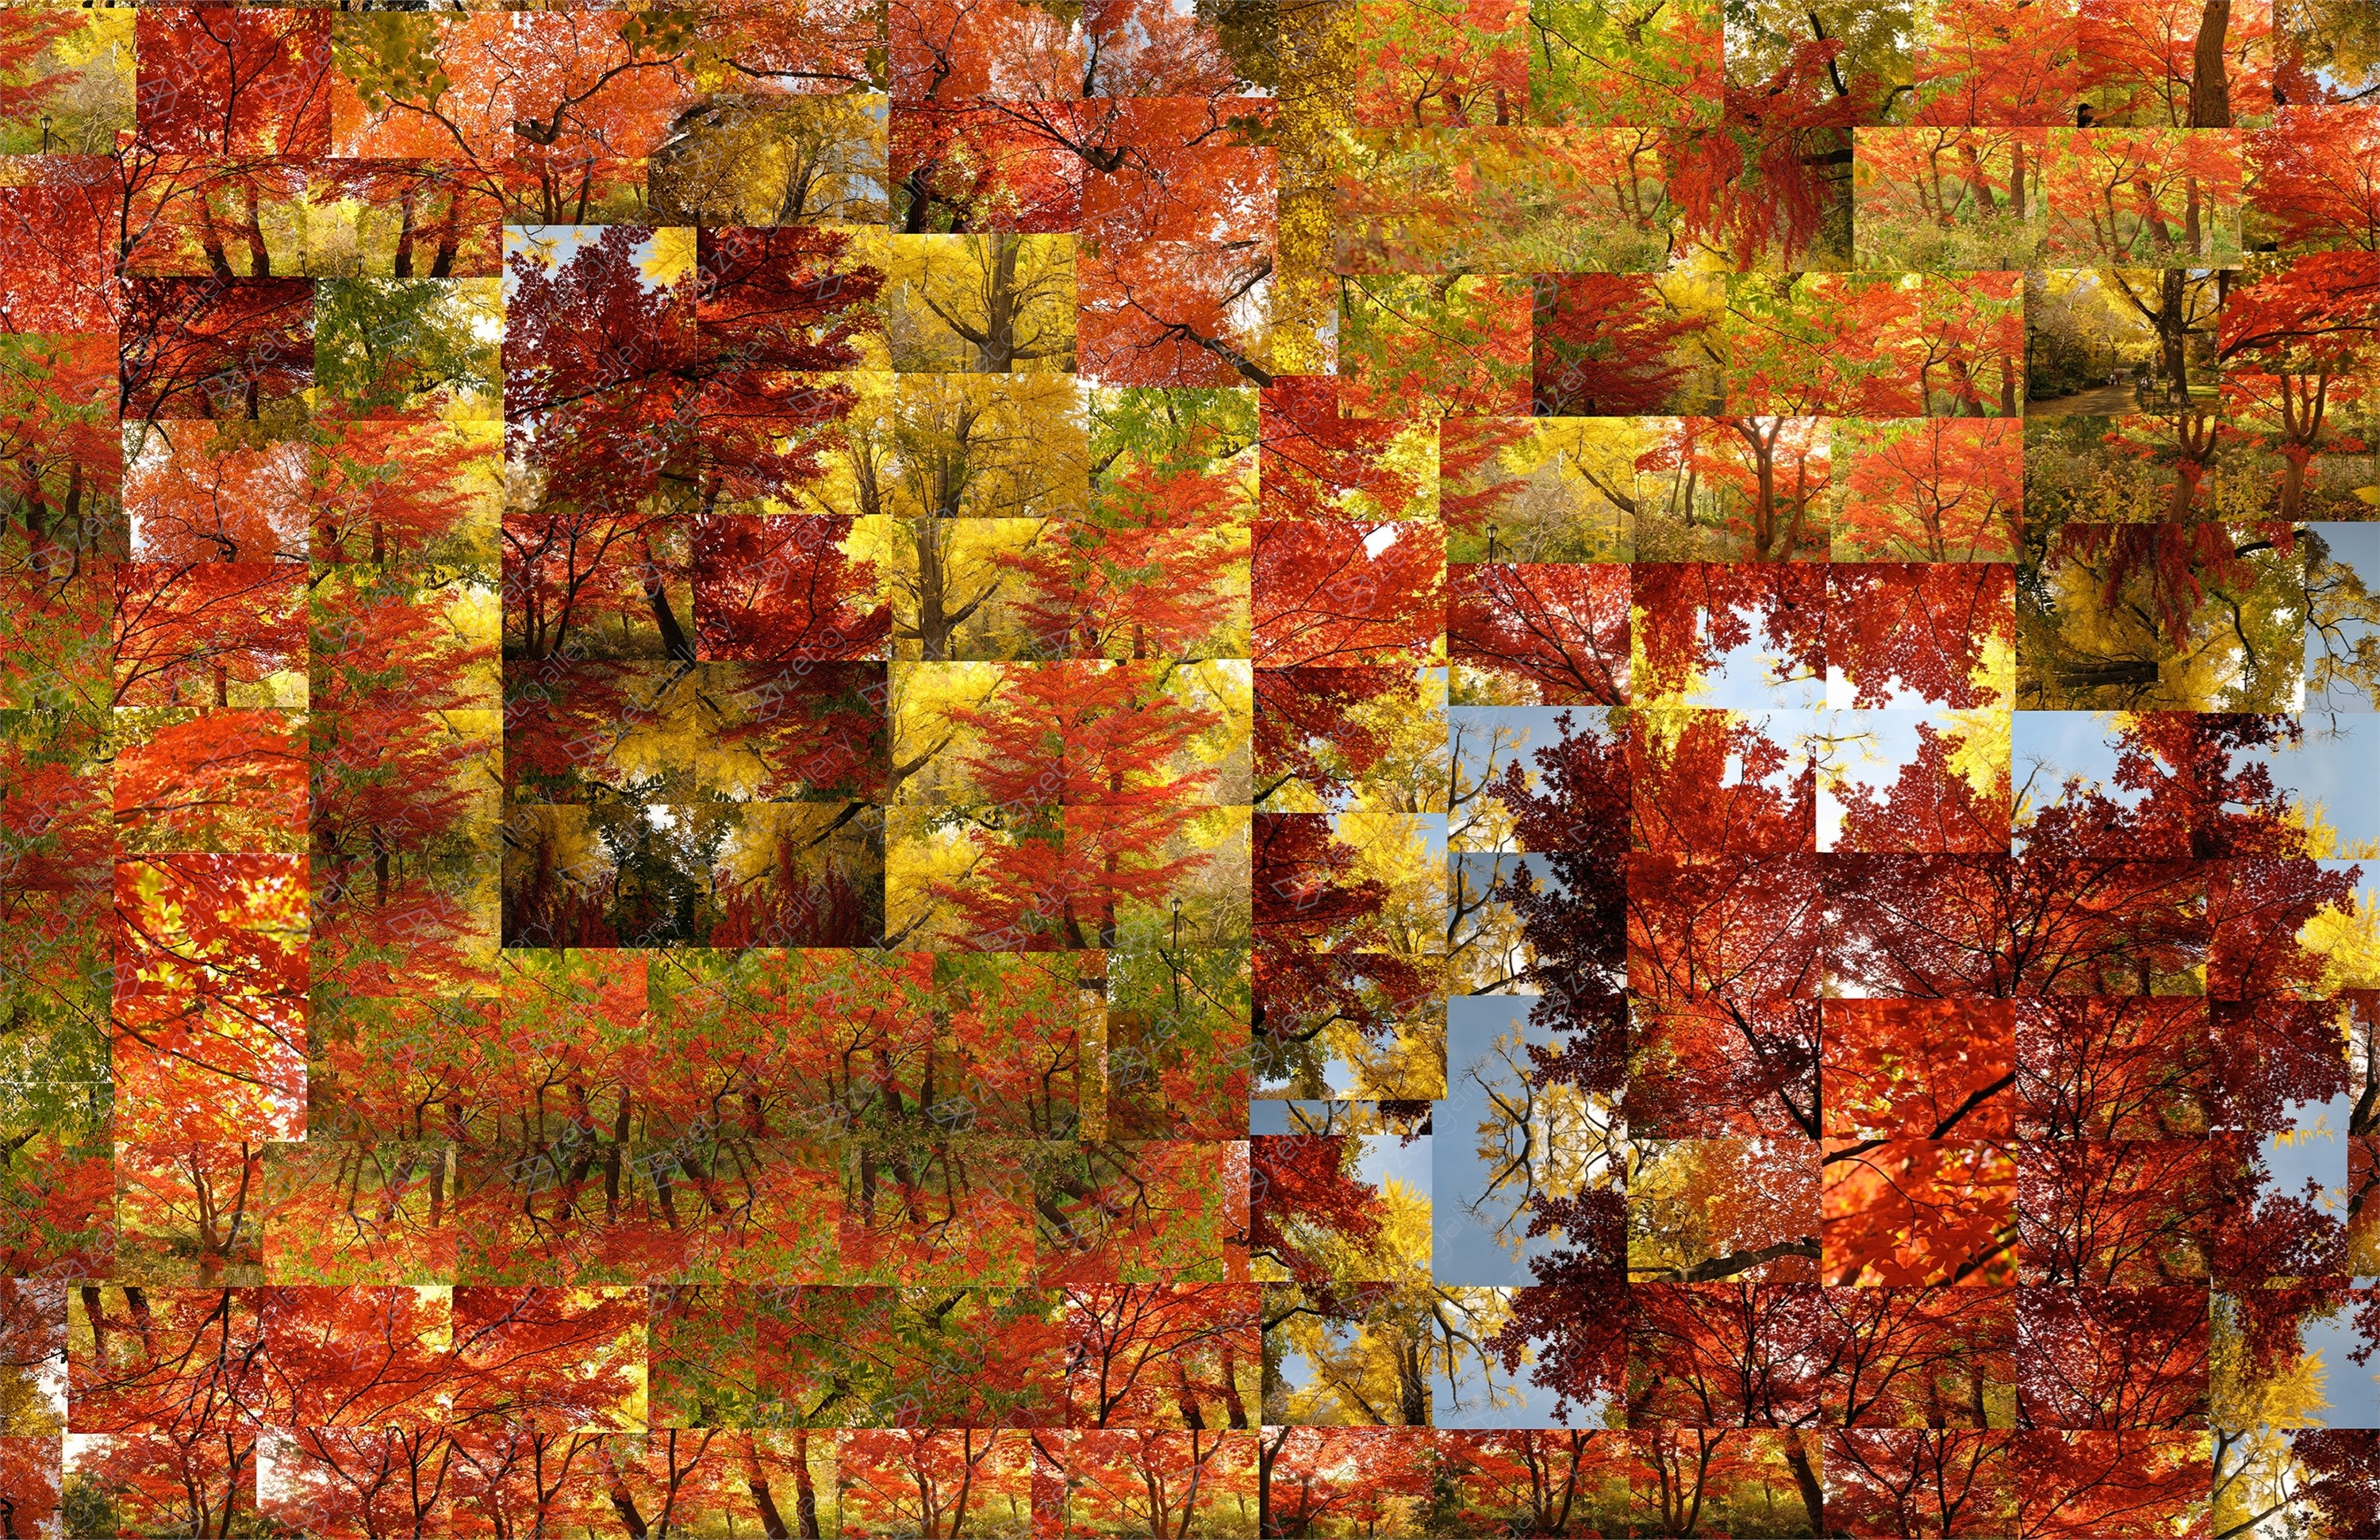 Fall - In depth Opus 1, original Nature Digital Photography by Shimon and Tammar Rothstein